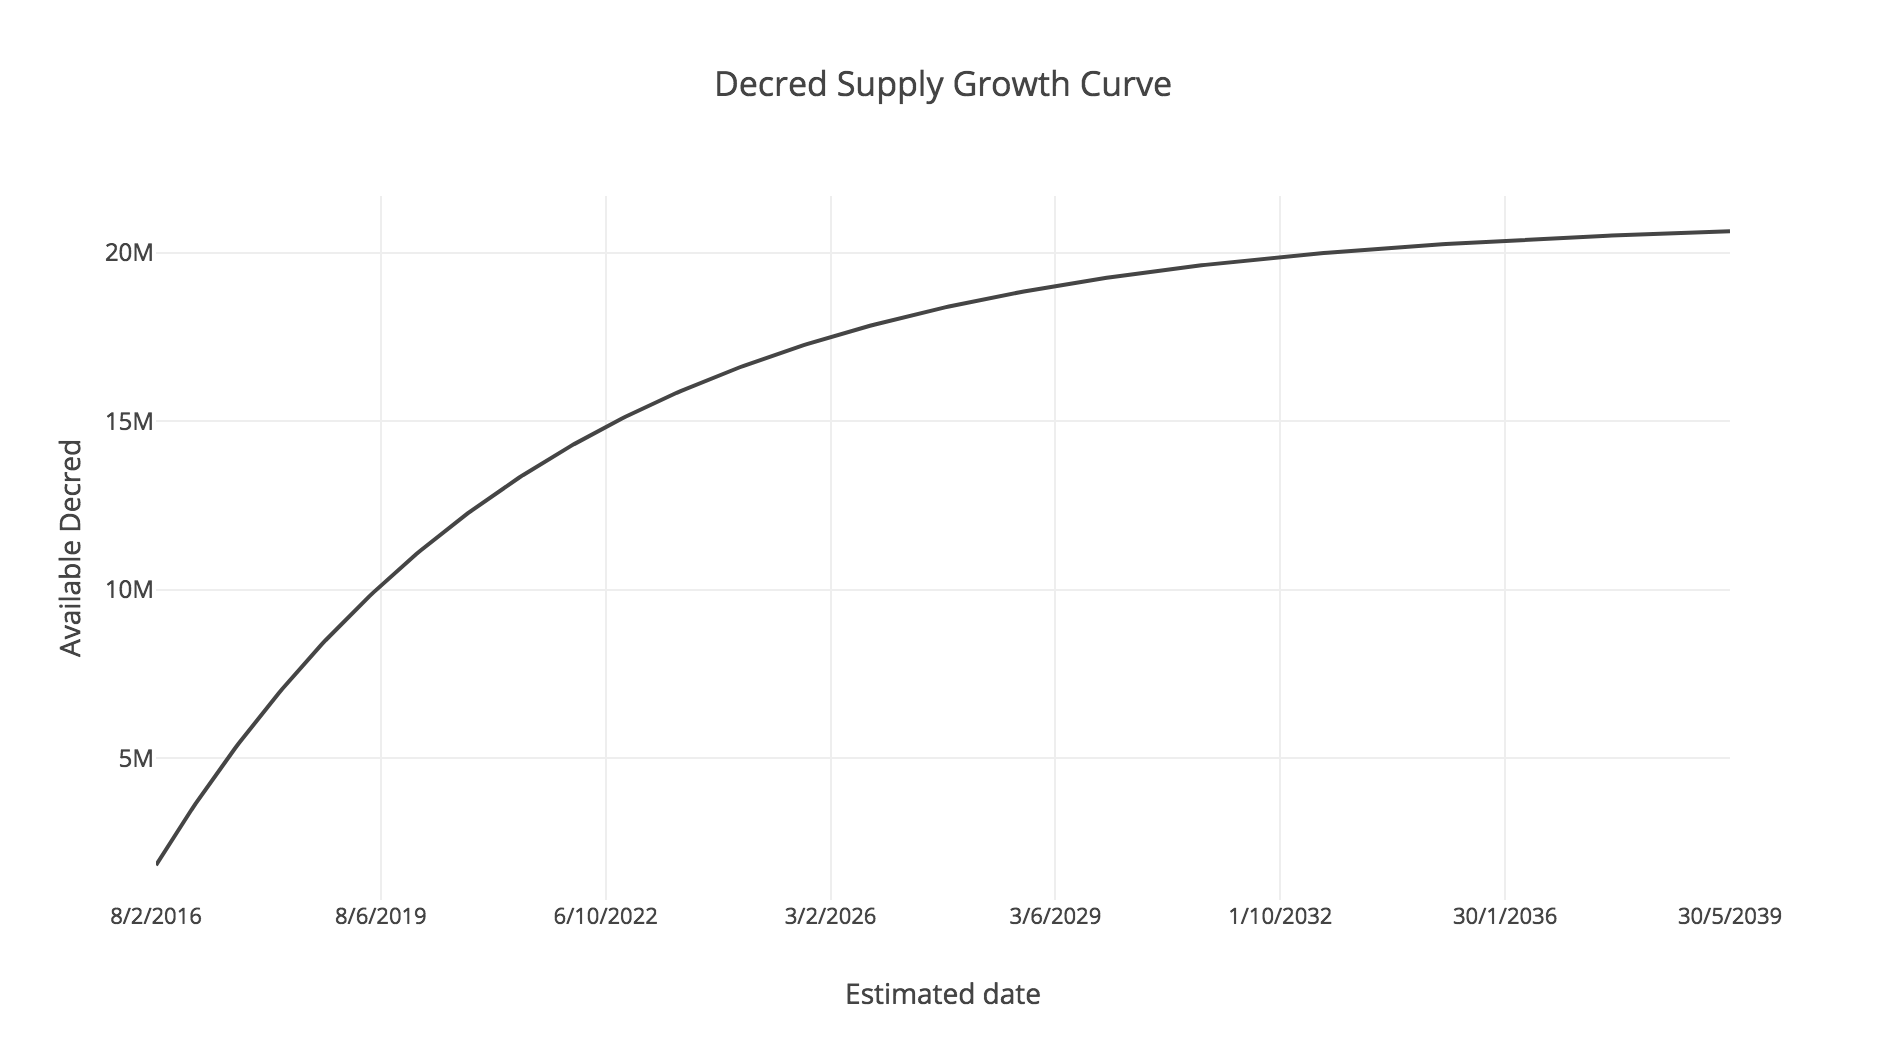 Figure 6 - Decred supply growth curve